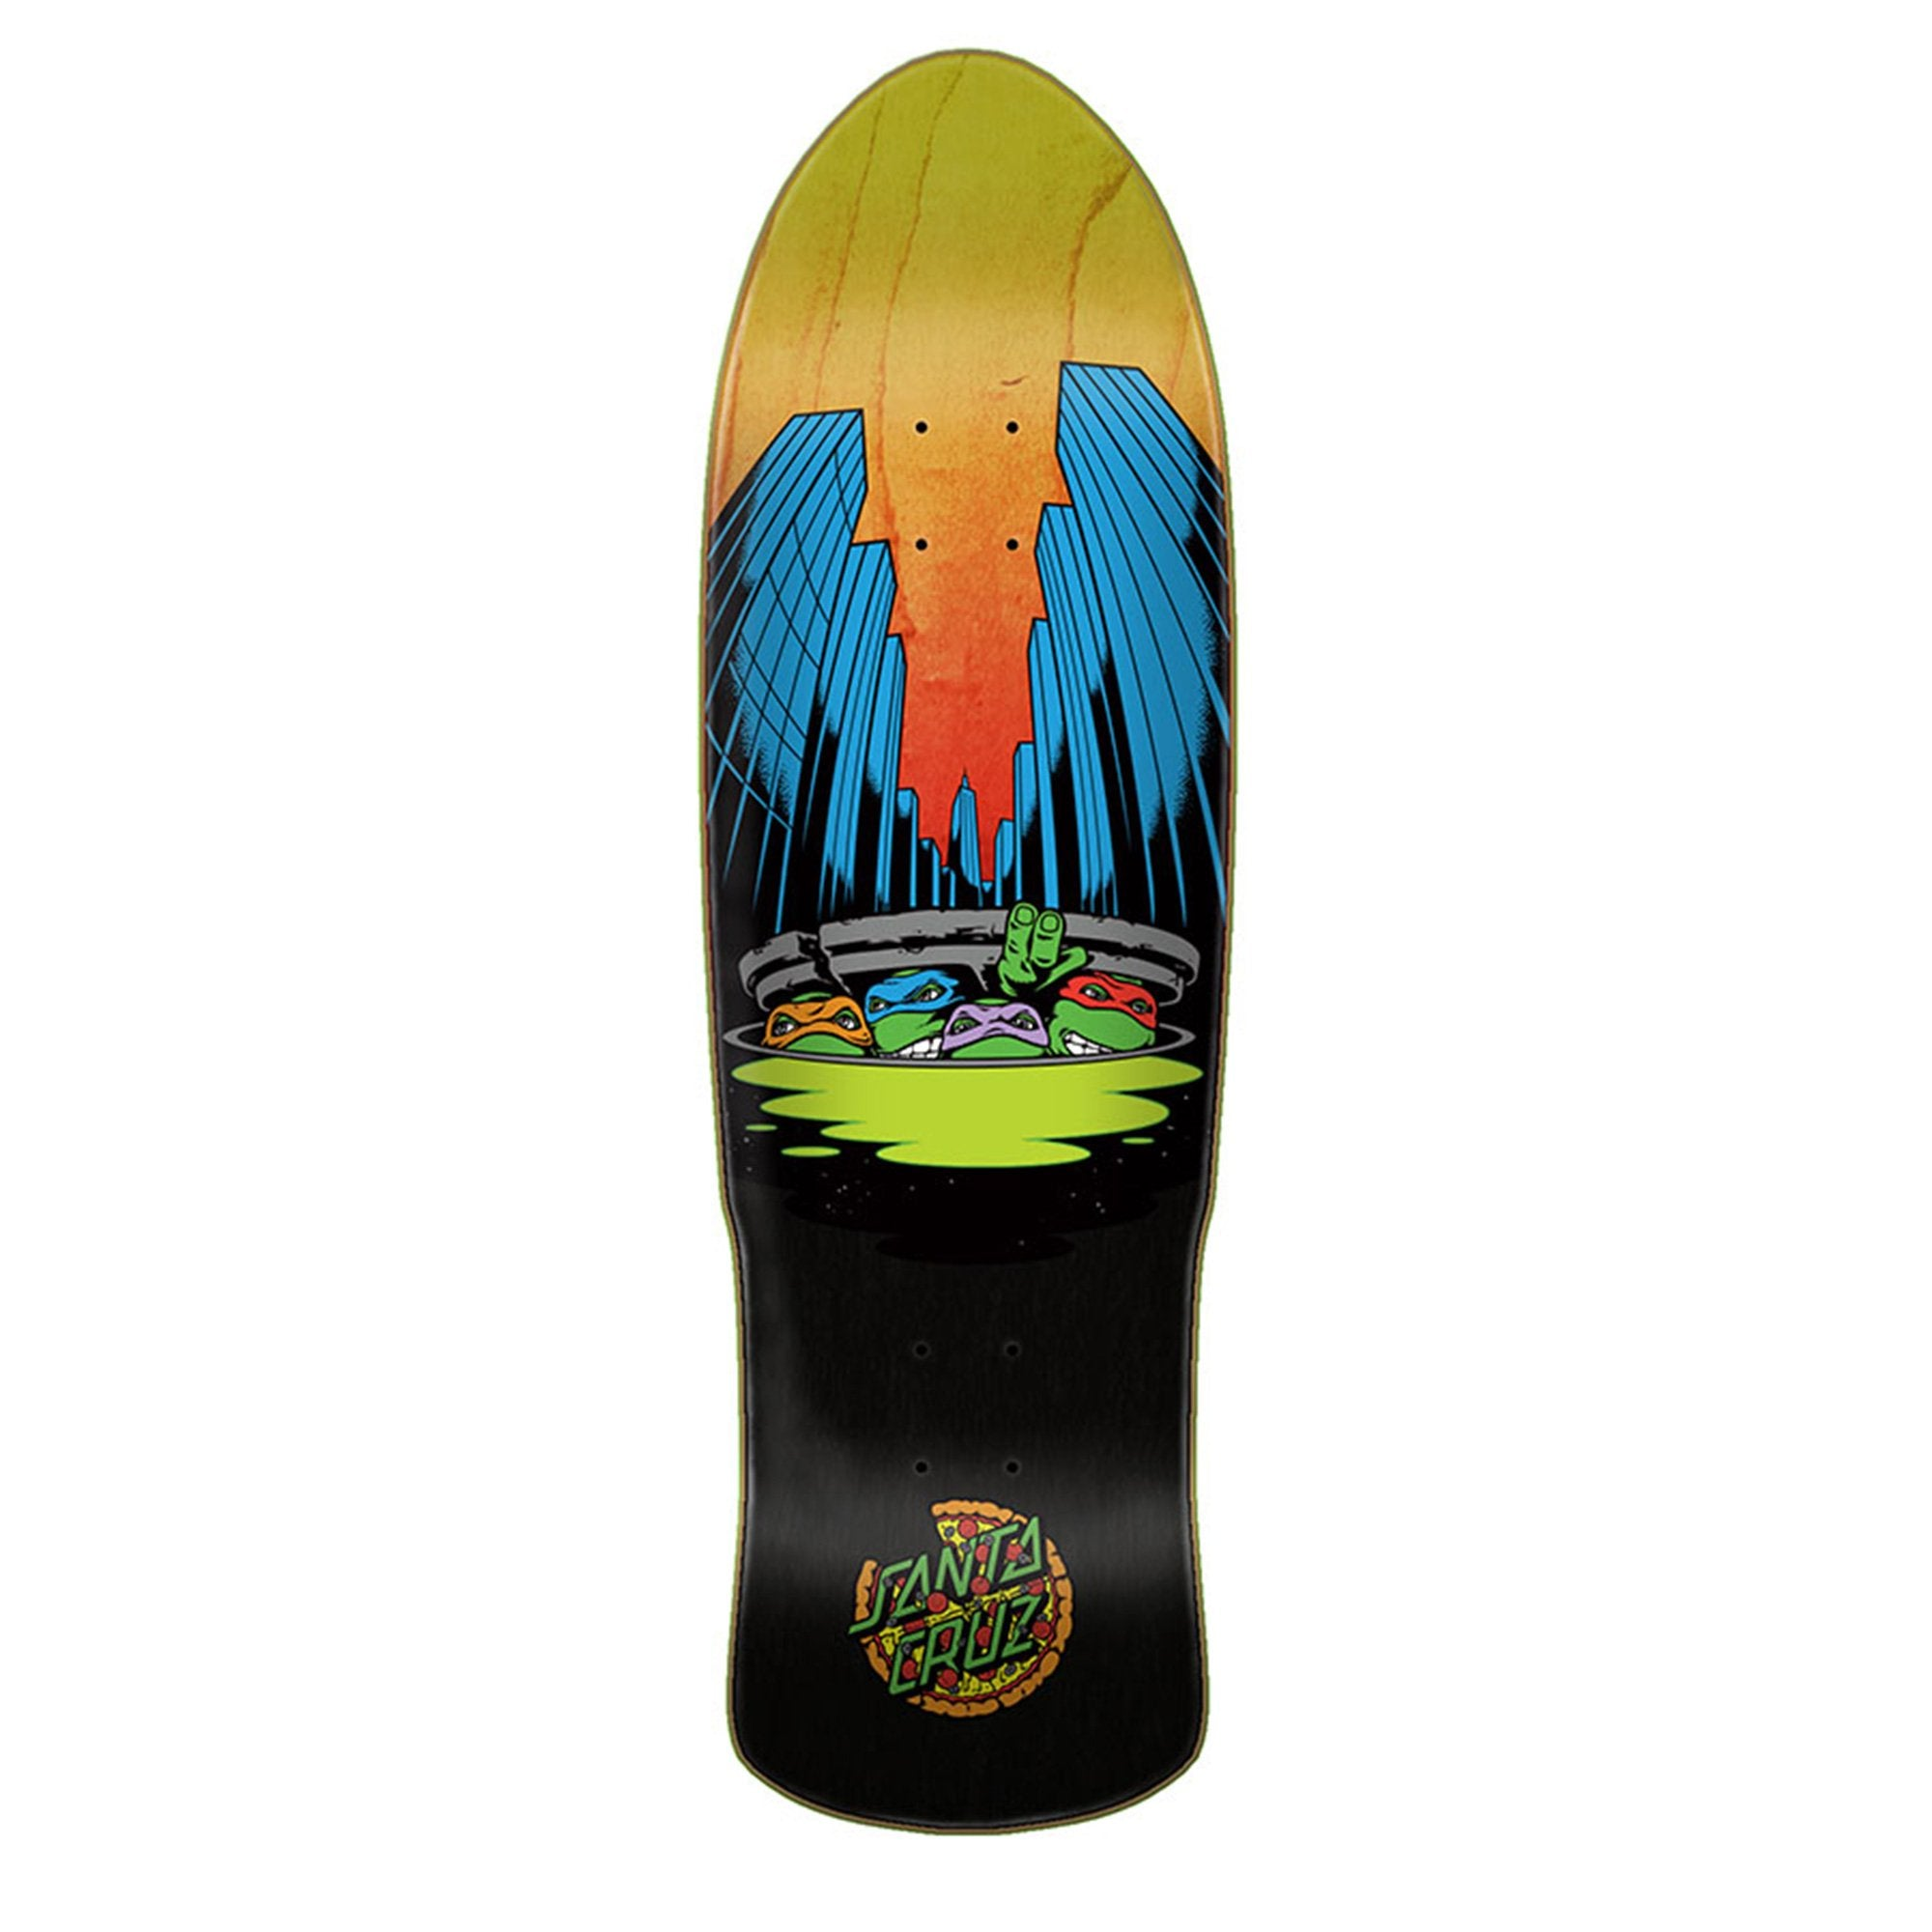 SANTA CRUZ TMNT PRE-ISSUE DECK - 9.42